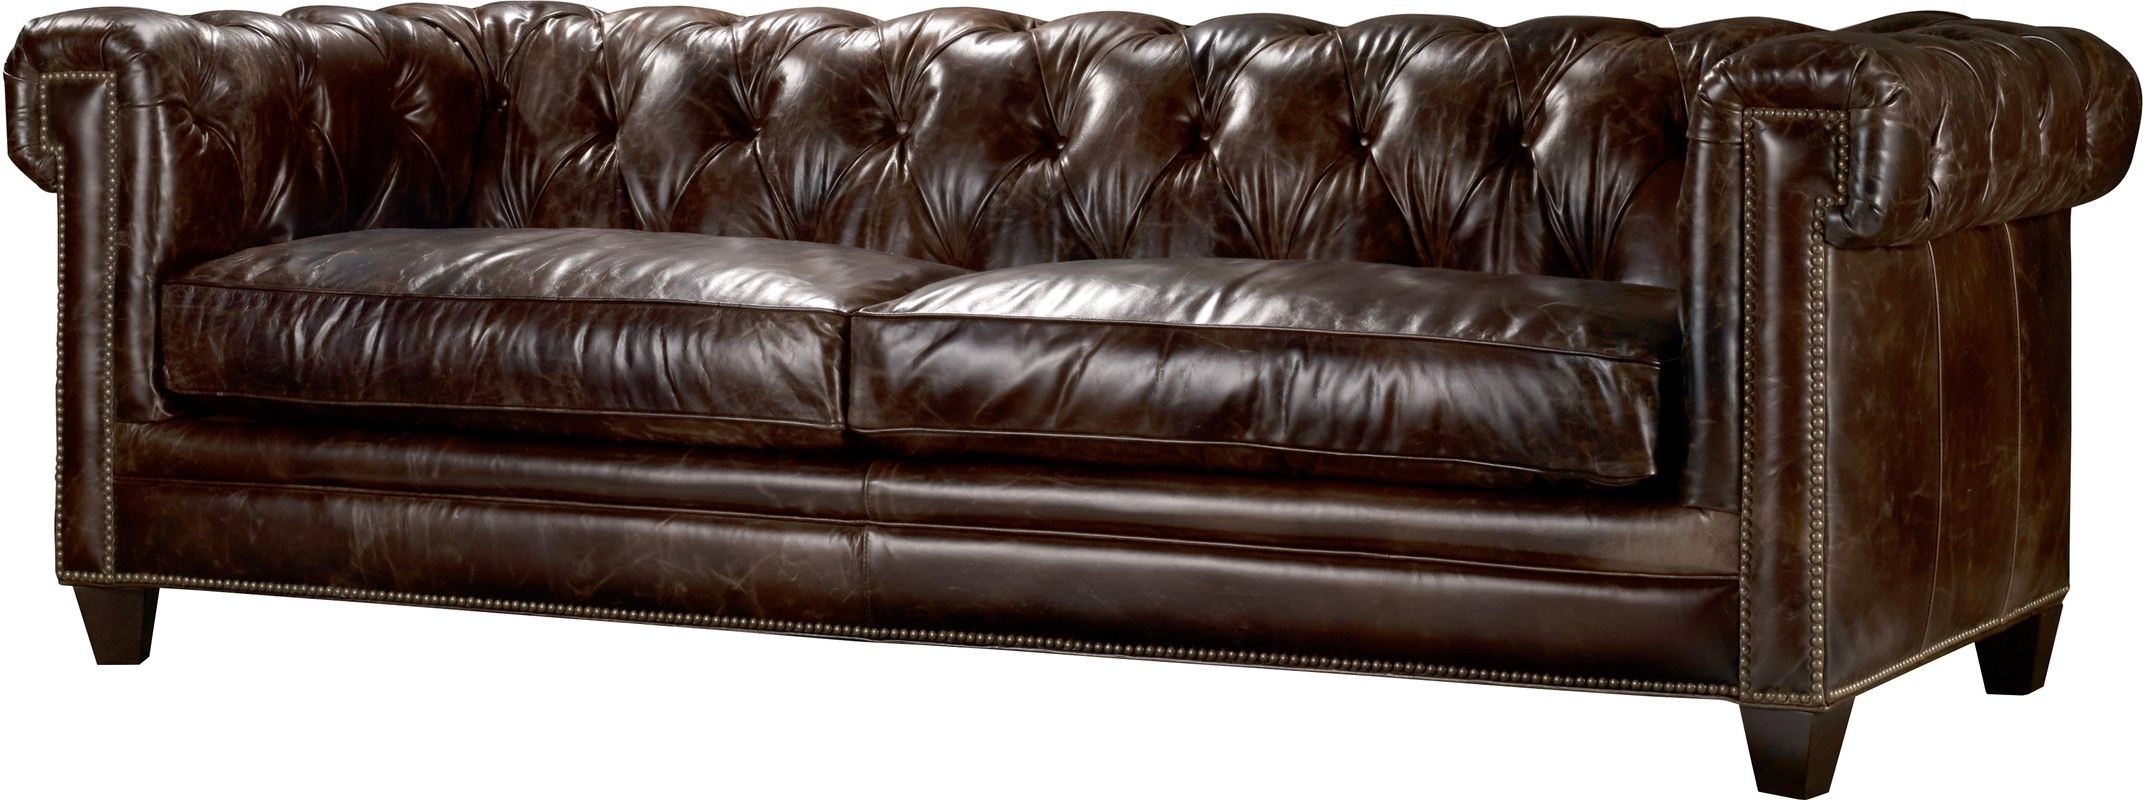 Leather Chesterfield Sofas Regarding Most Current Hooker Furniture Imperial Regal Stationary Leather Chesterfield (View 10 of 20)